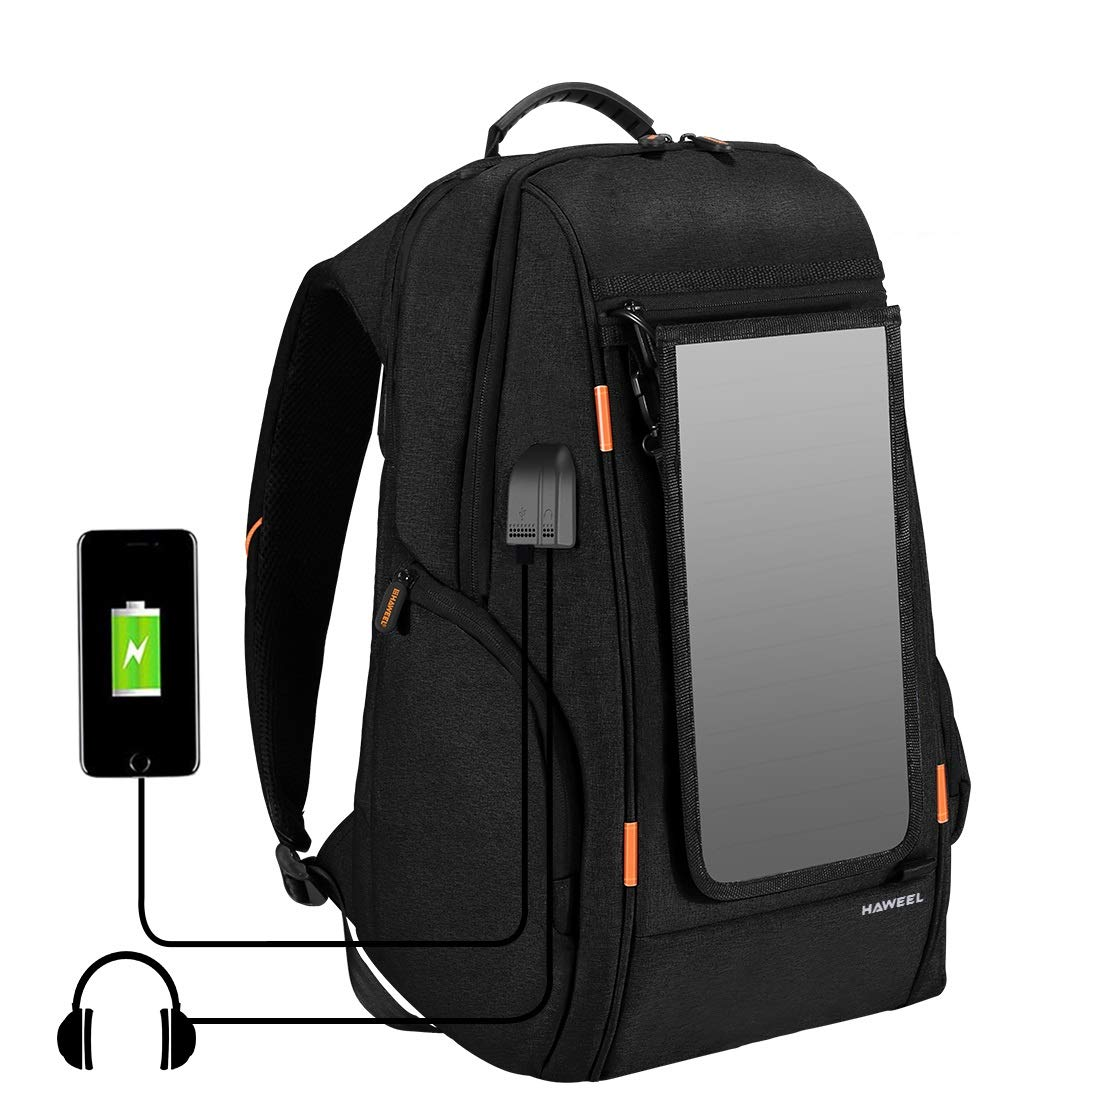 HAWEEL Outdoor Multi-Function Solar Panel Power Breathable Casual Backpack  Laptop Bag School Bookbag for College Travel Backpack, with USB Charging  Port ... 2717d5fe55